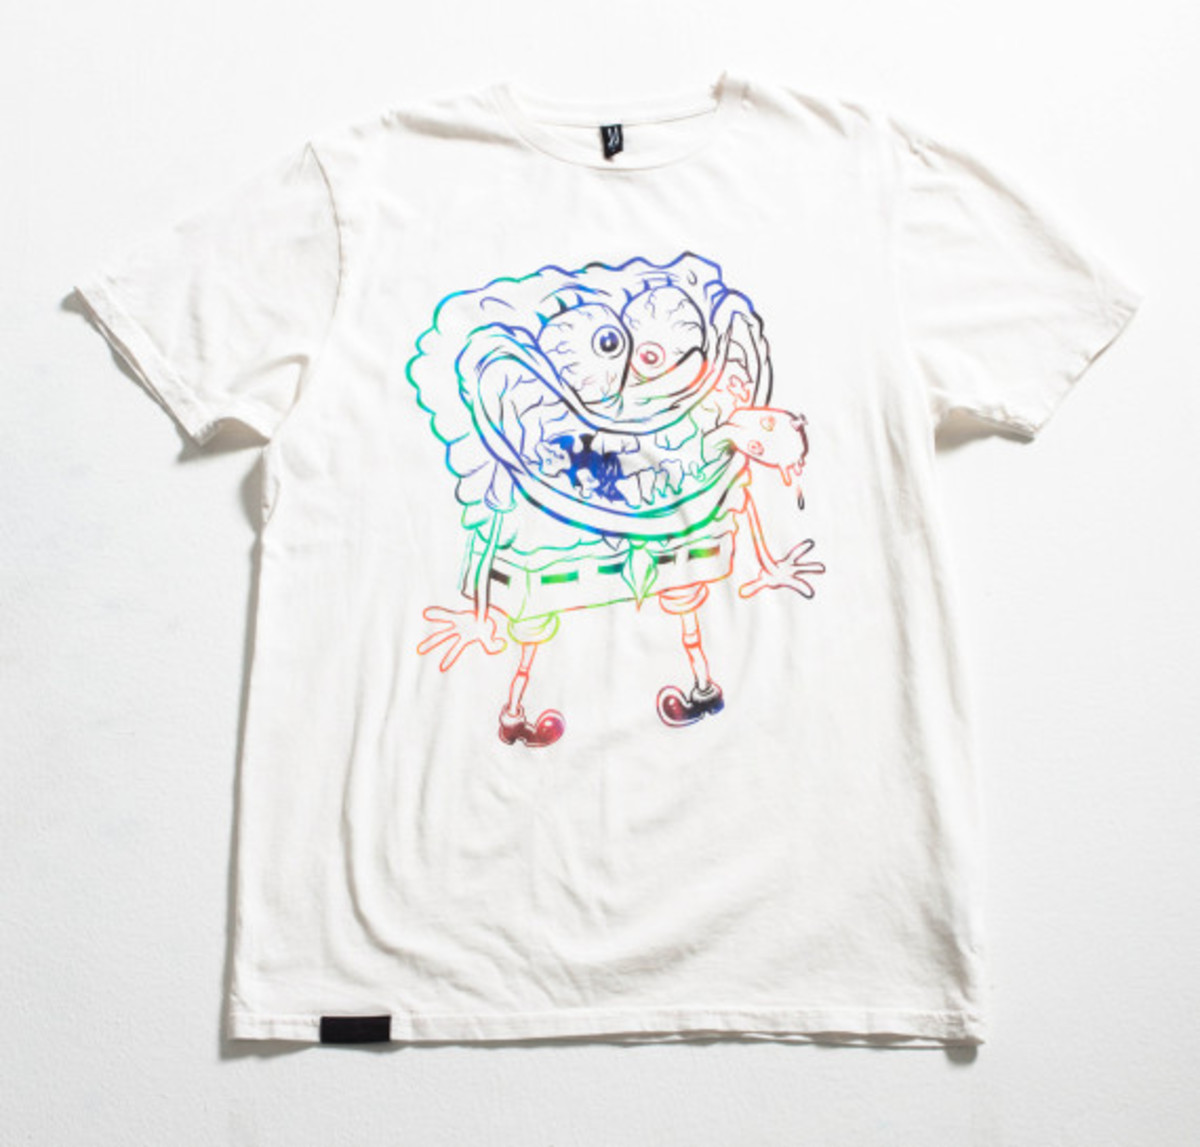 spongebob-squarepants-comune-collaboration-capsule-03